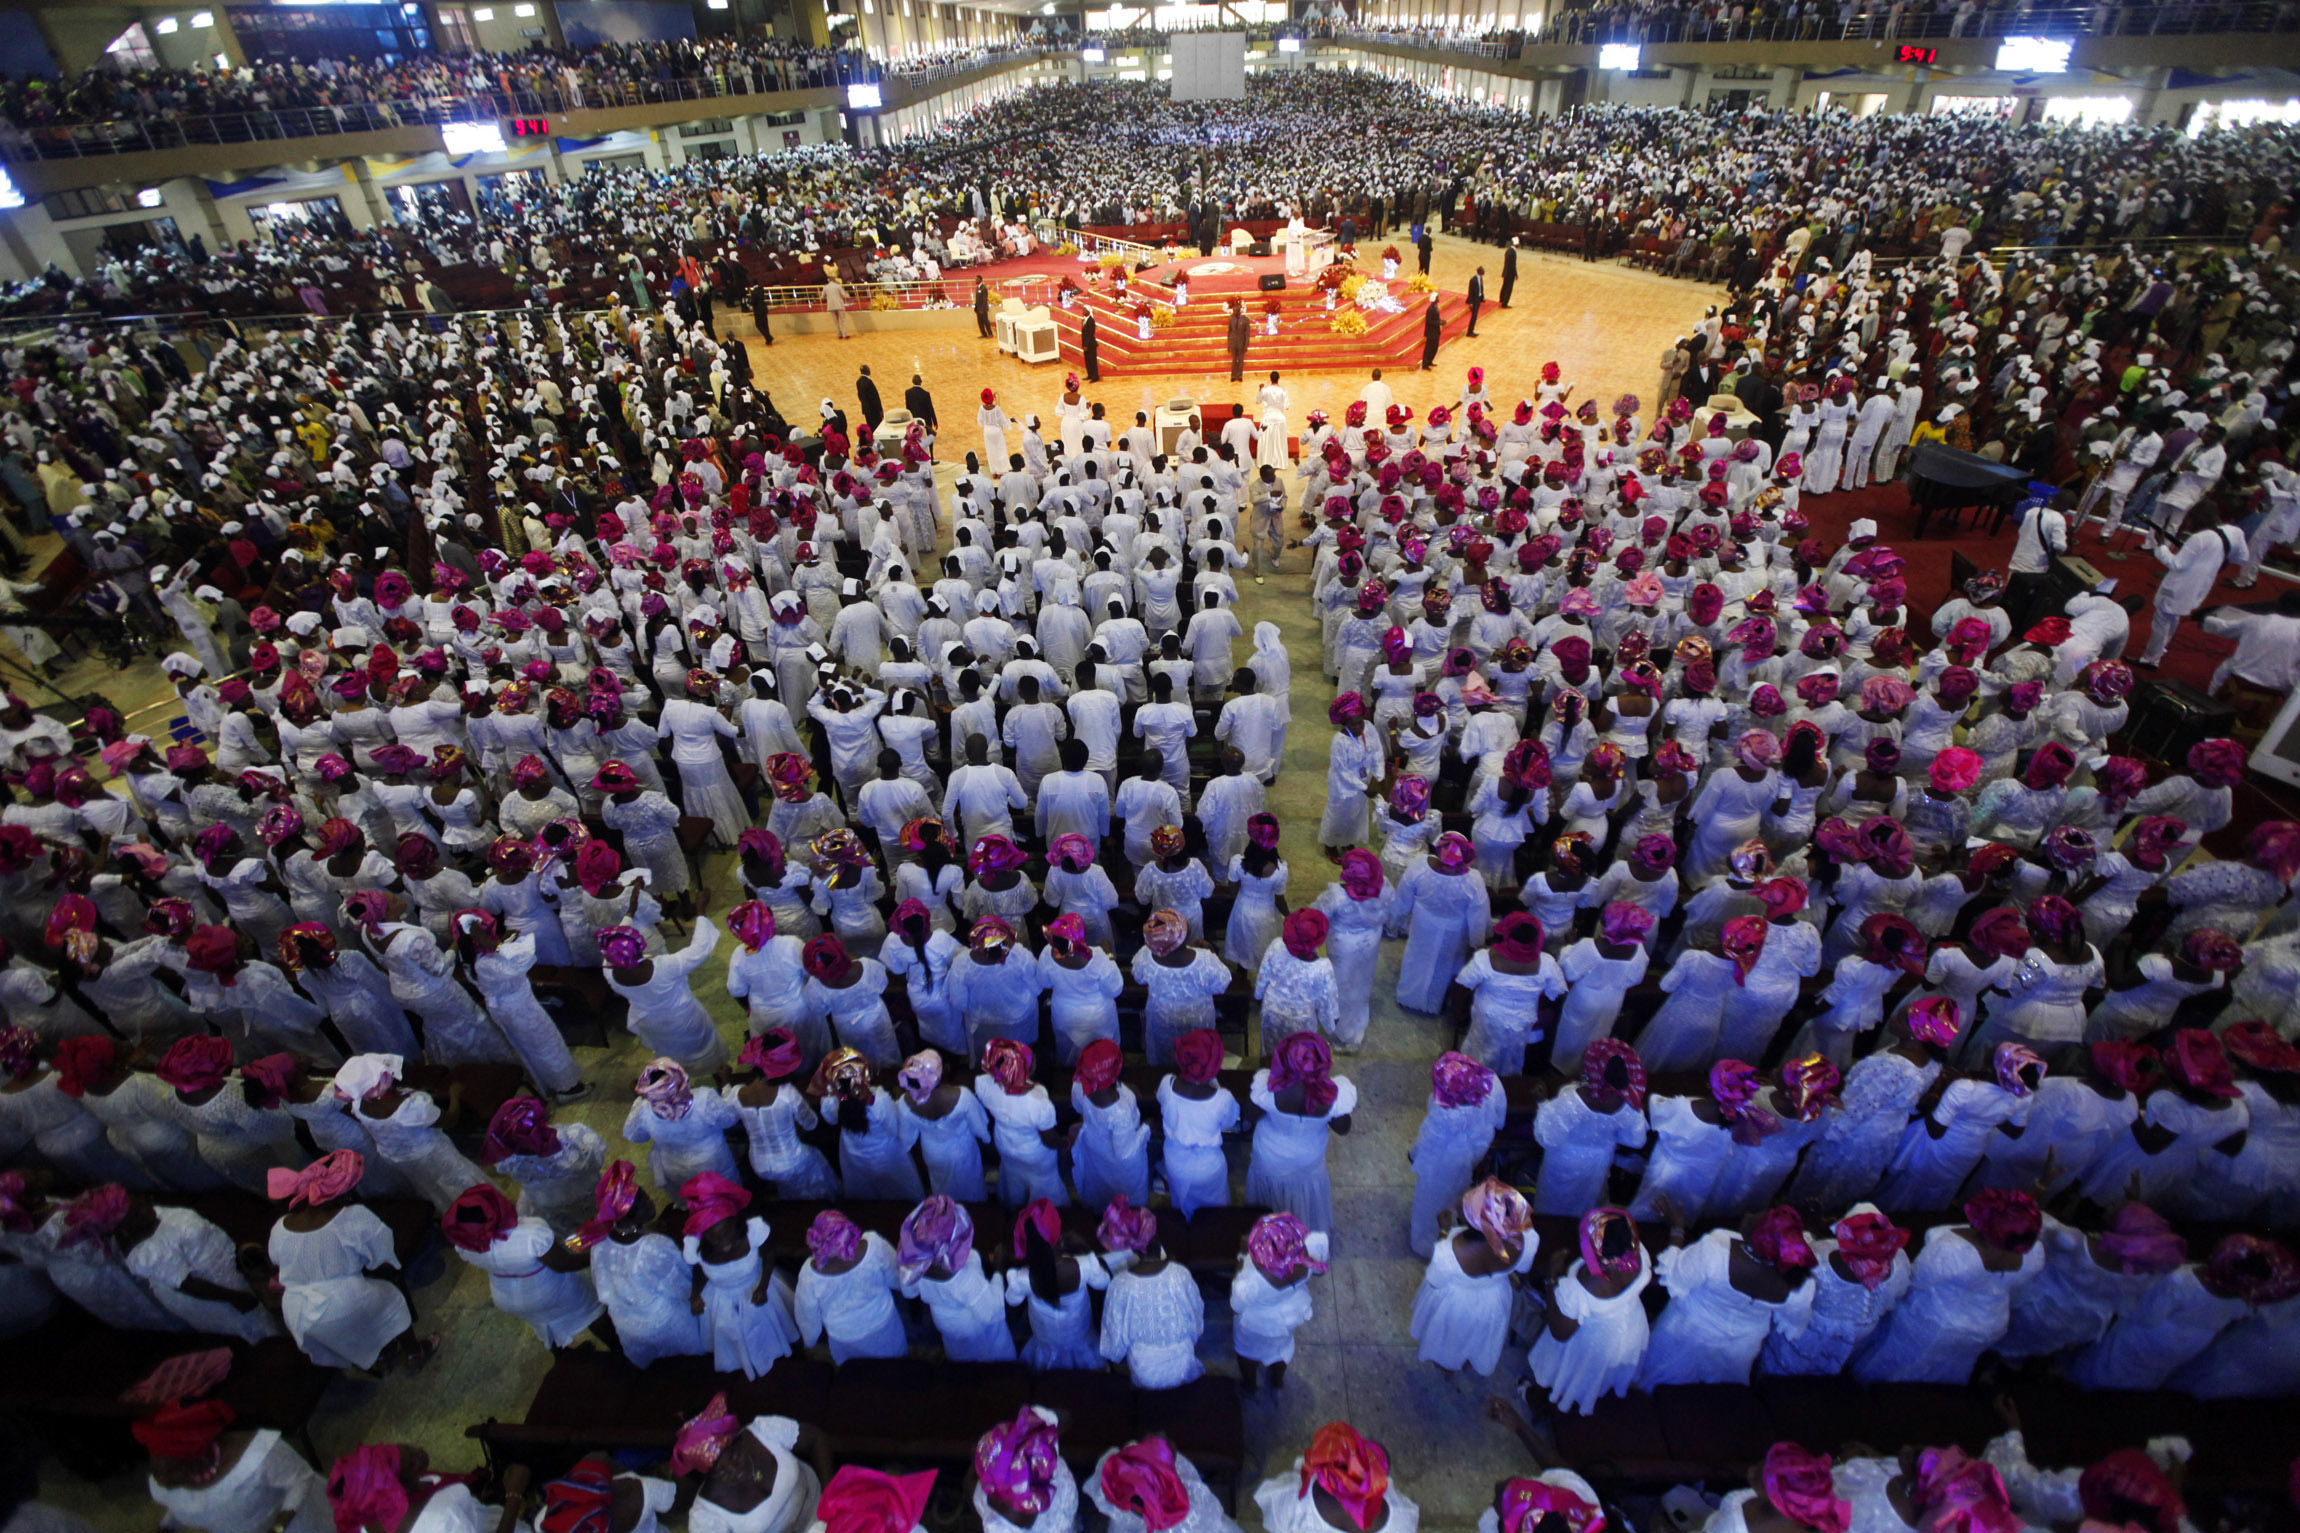 Worshippers attend a church service at Living Faith Church, also known as Winners' Chapel, in Ota